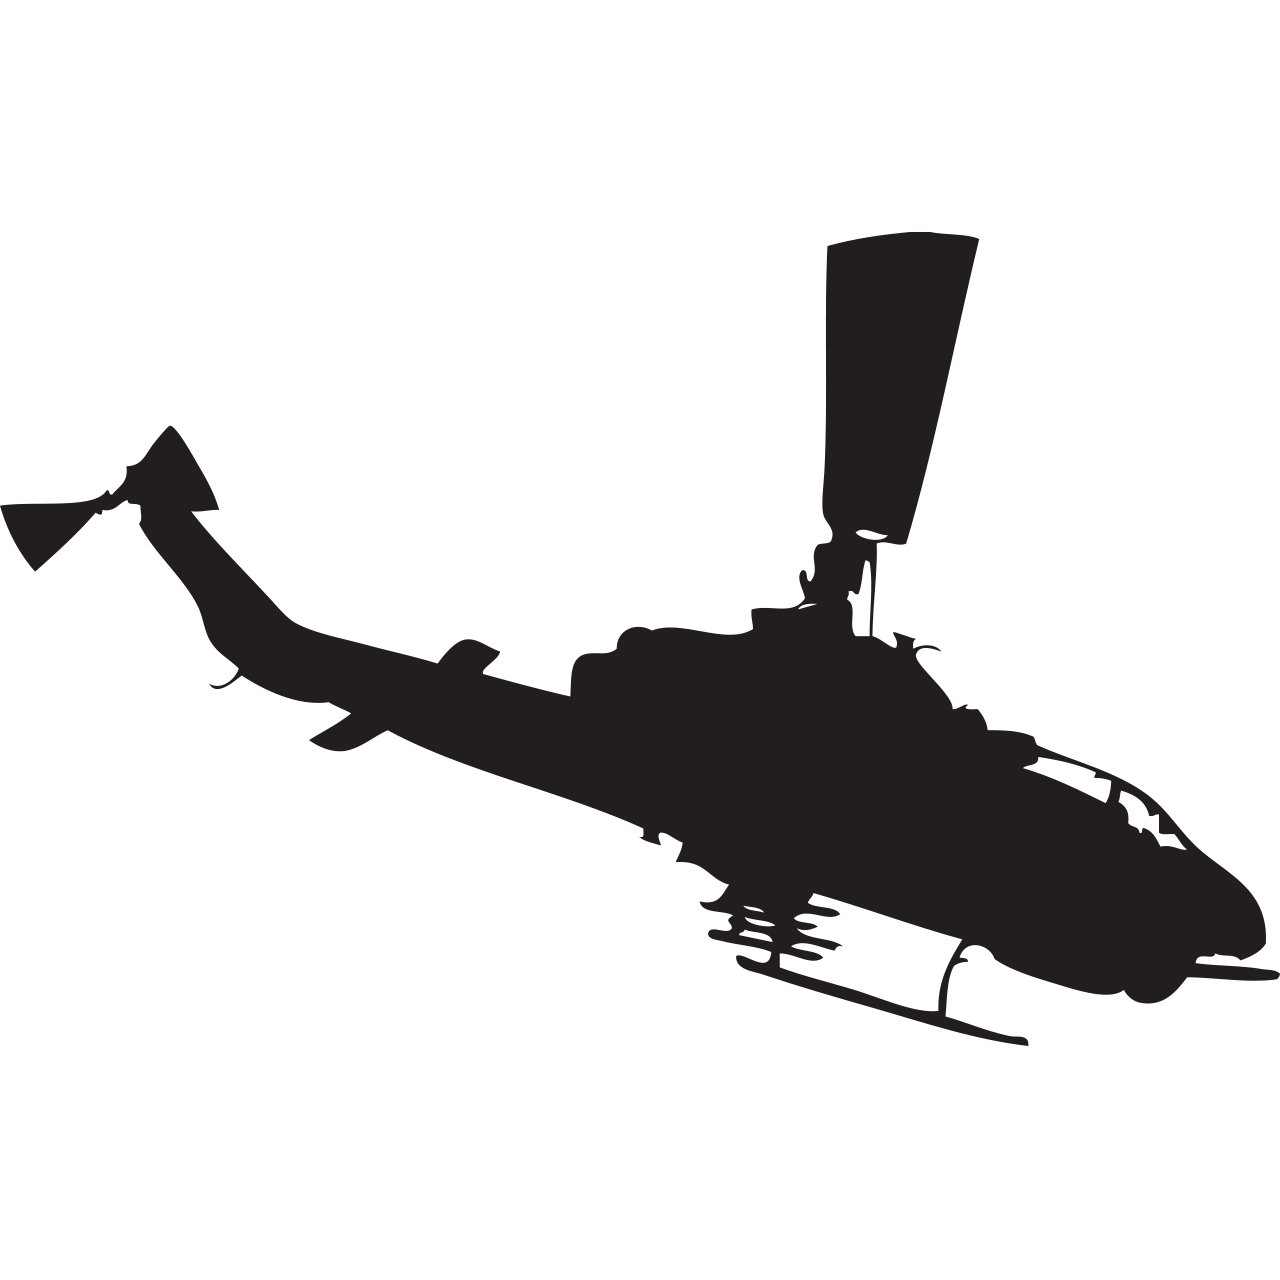 Apache drawing blackhawk helicopter. Black hawk silhouette at